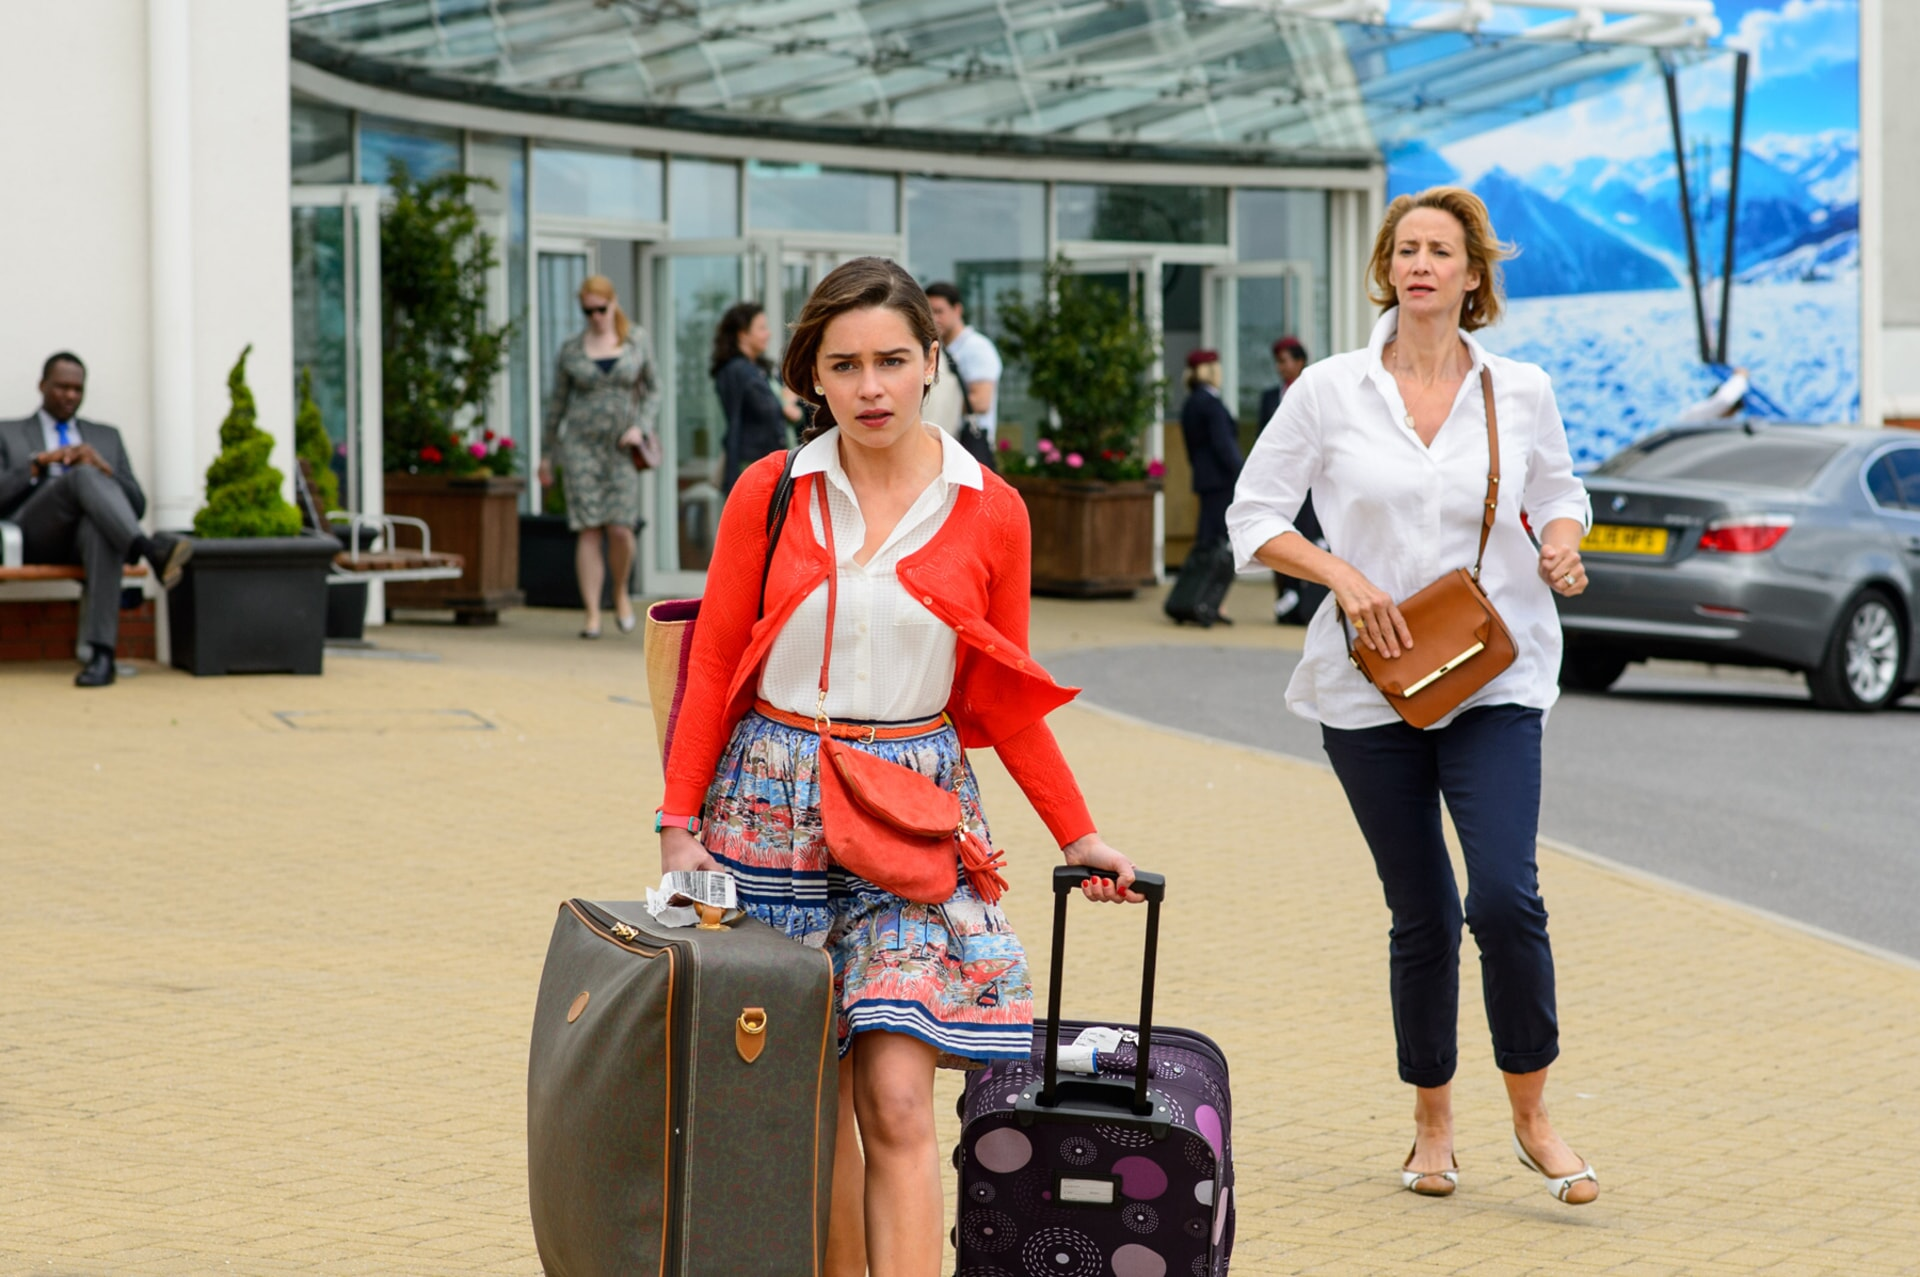 EMILIA CLARKE as Lou Clark and walking away with luggage while JANET McTEER as Camilla Traynor follows her.